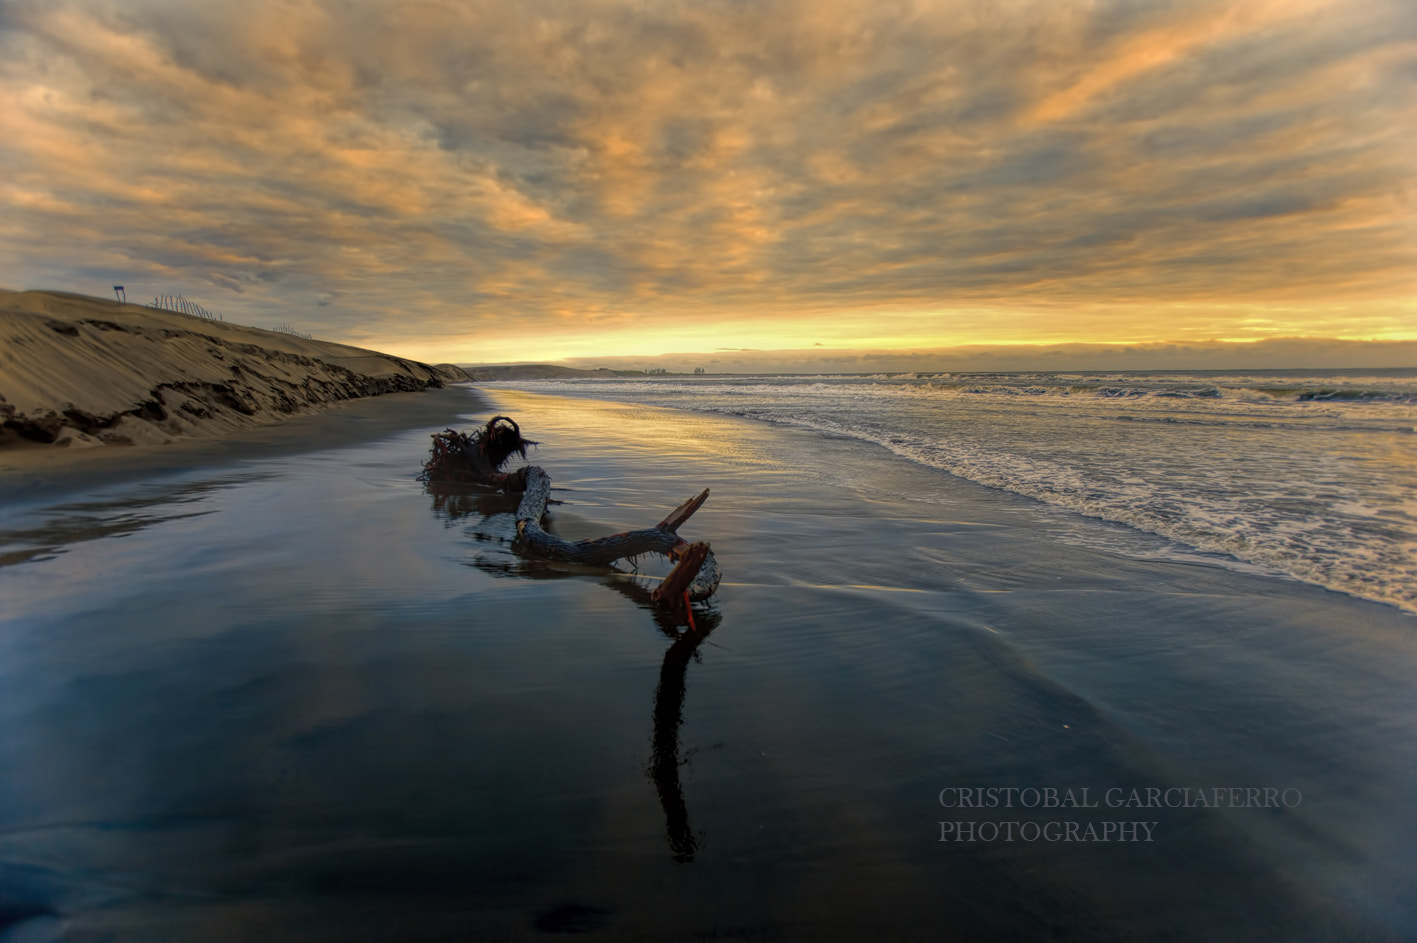 Photograph Sunrise at the shore by Cristobal Garciaferro Rubio on 500px